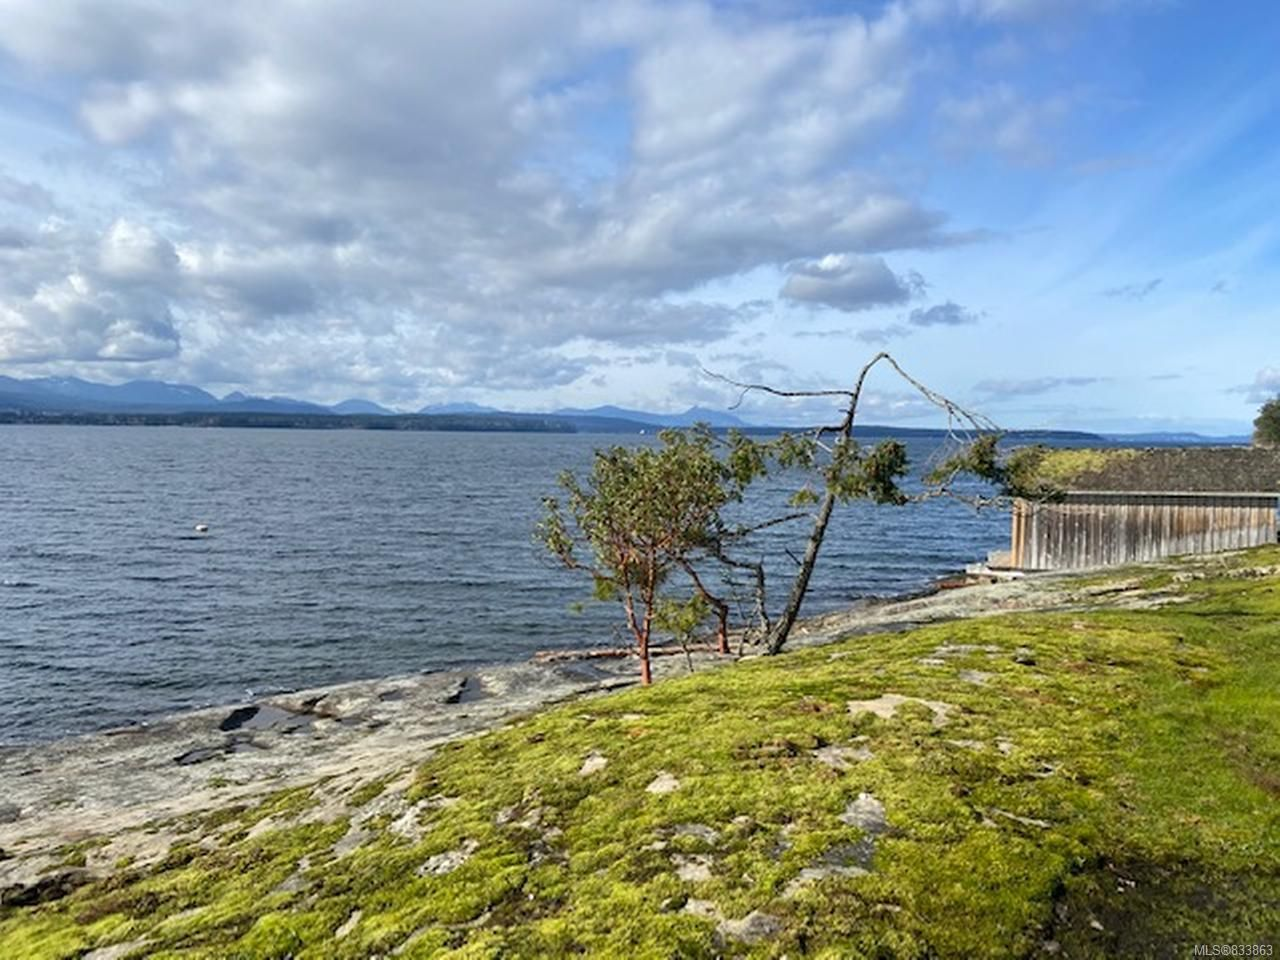 Photo 3: Photos: 255 Forbes Dr in THETIS ISLAND: Isl Thetis Island House for sale (Islands)  : MLS®# 833863